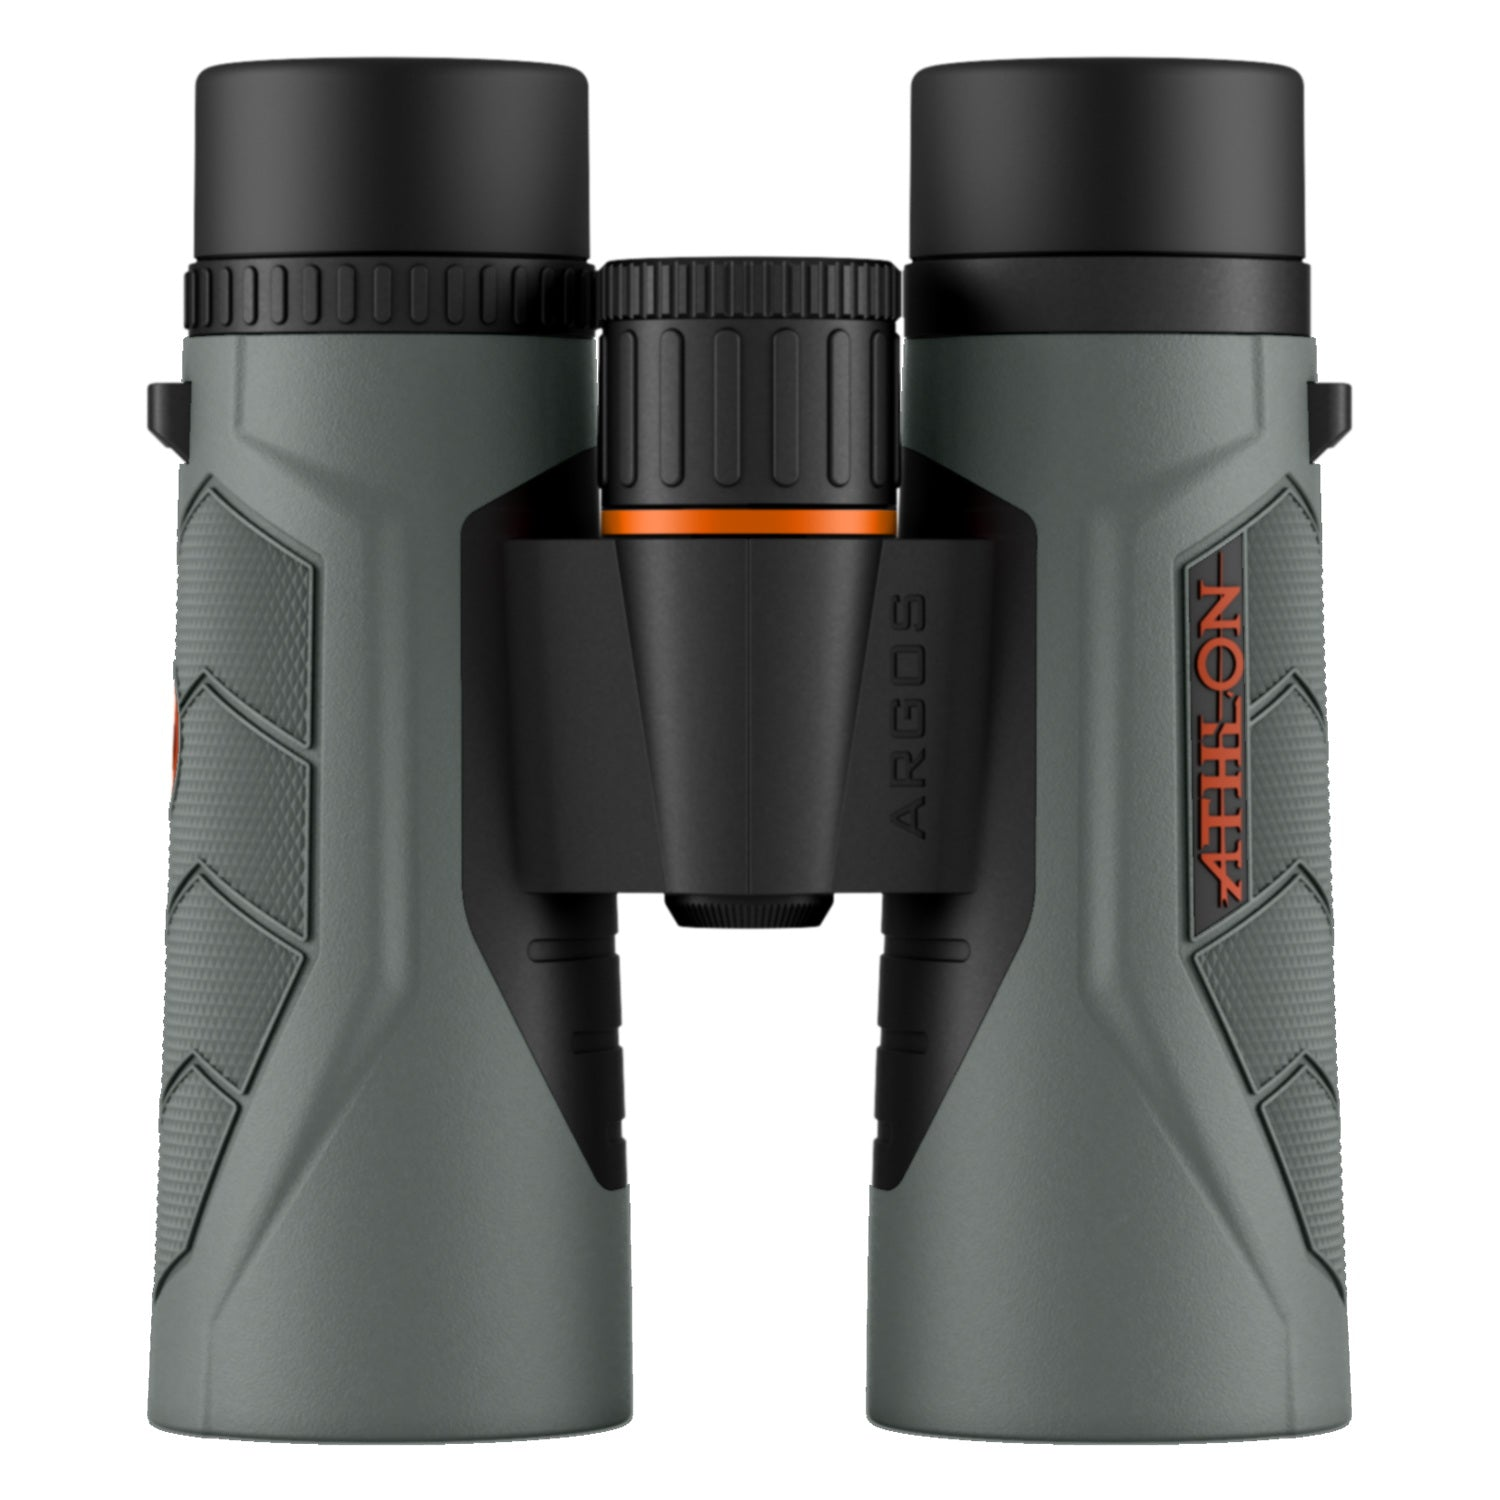 Athlon Argos G2 8x42mm HD Binoculars